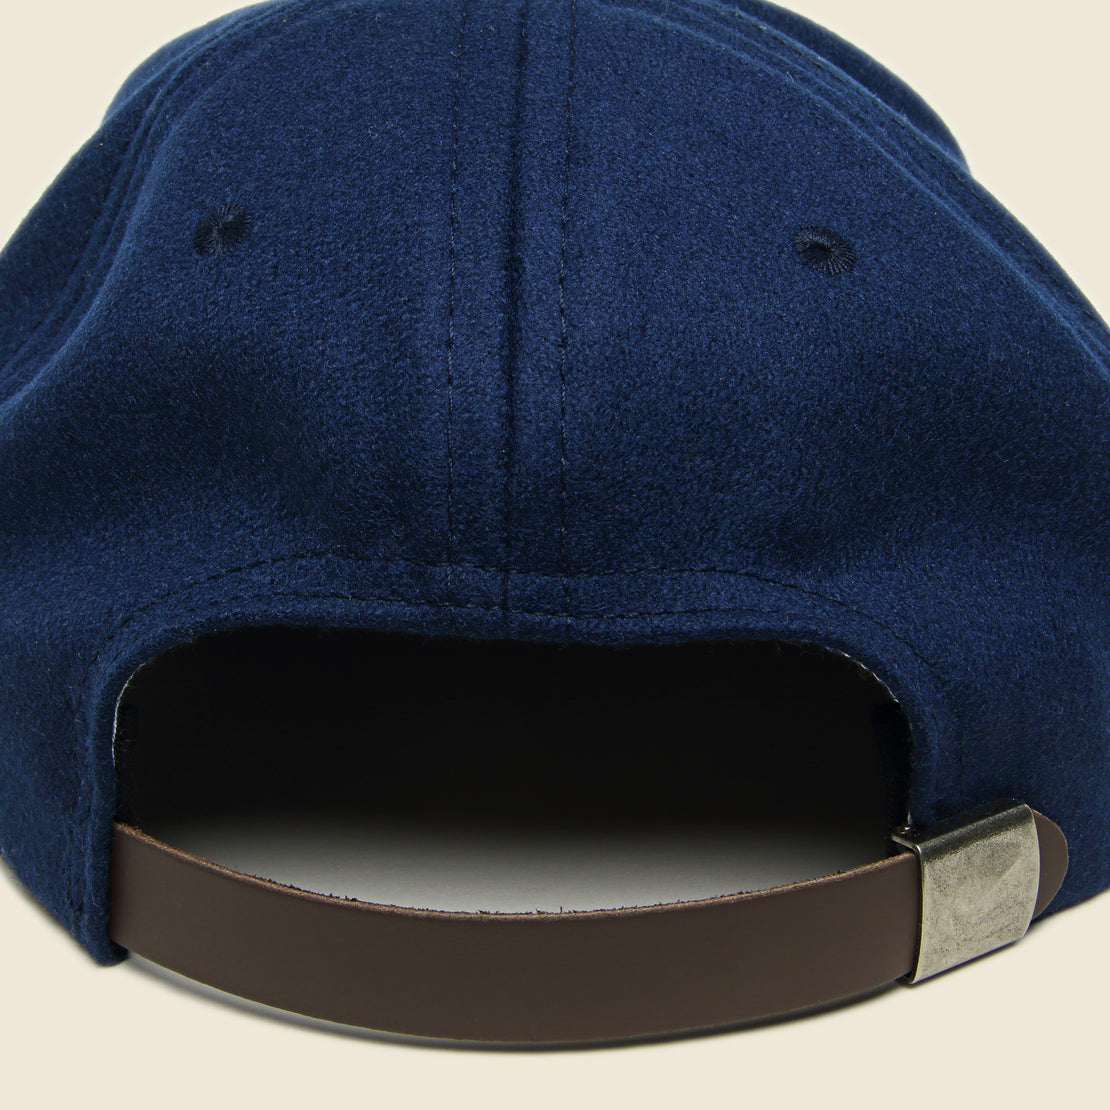 STAG Exclusive Los Angeles Dodgers Hat - Navy - Ebbets Field Flannels - STAG Provisions - Accessories - Hats